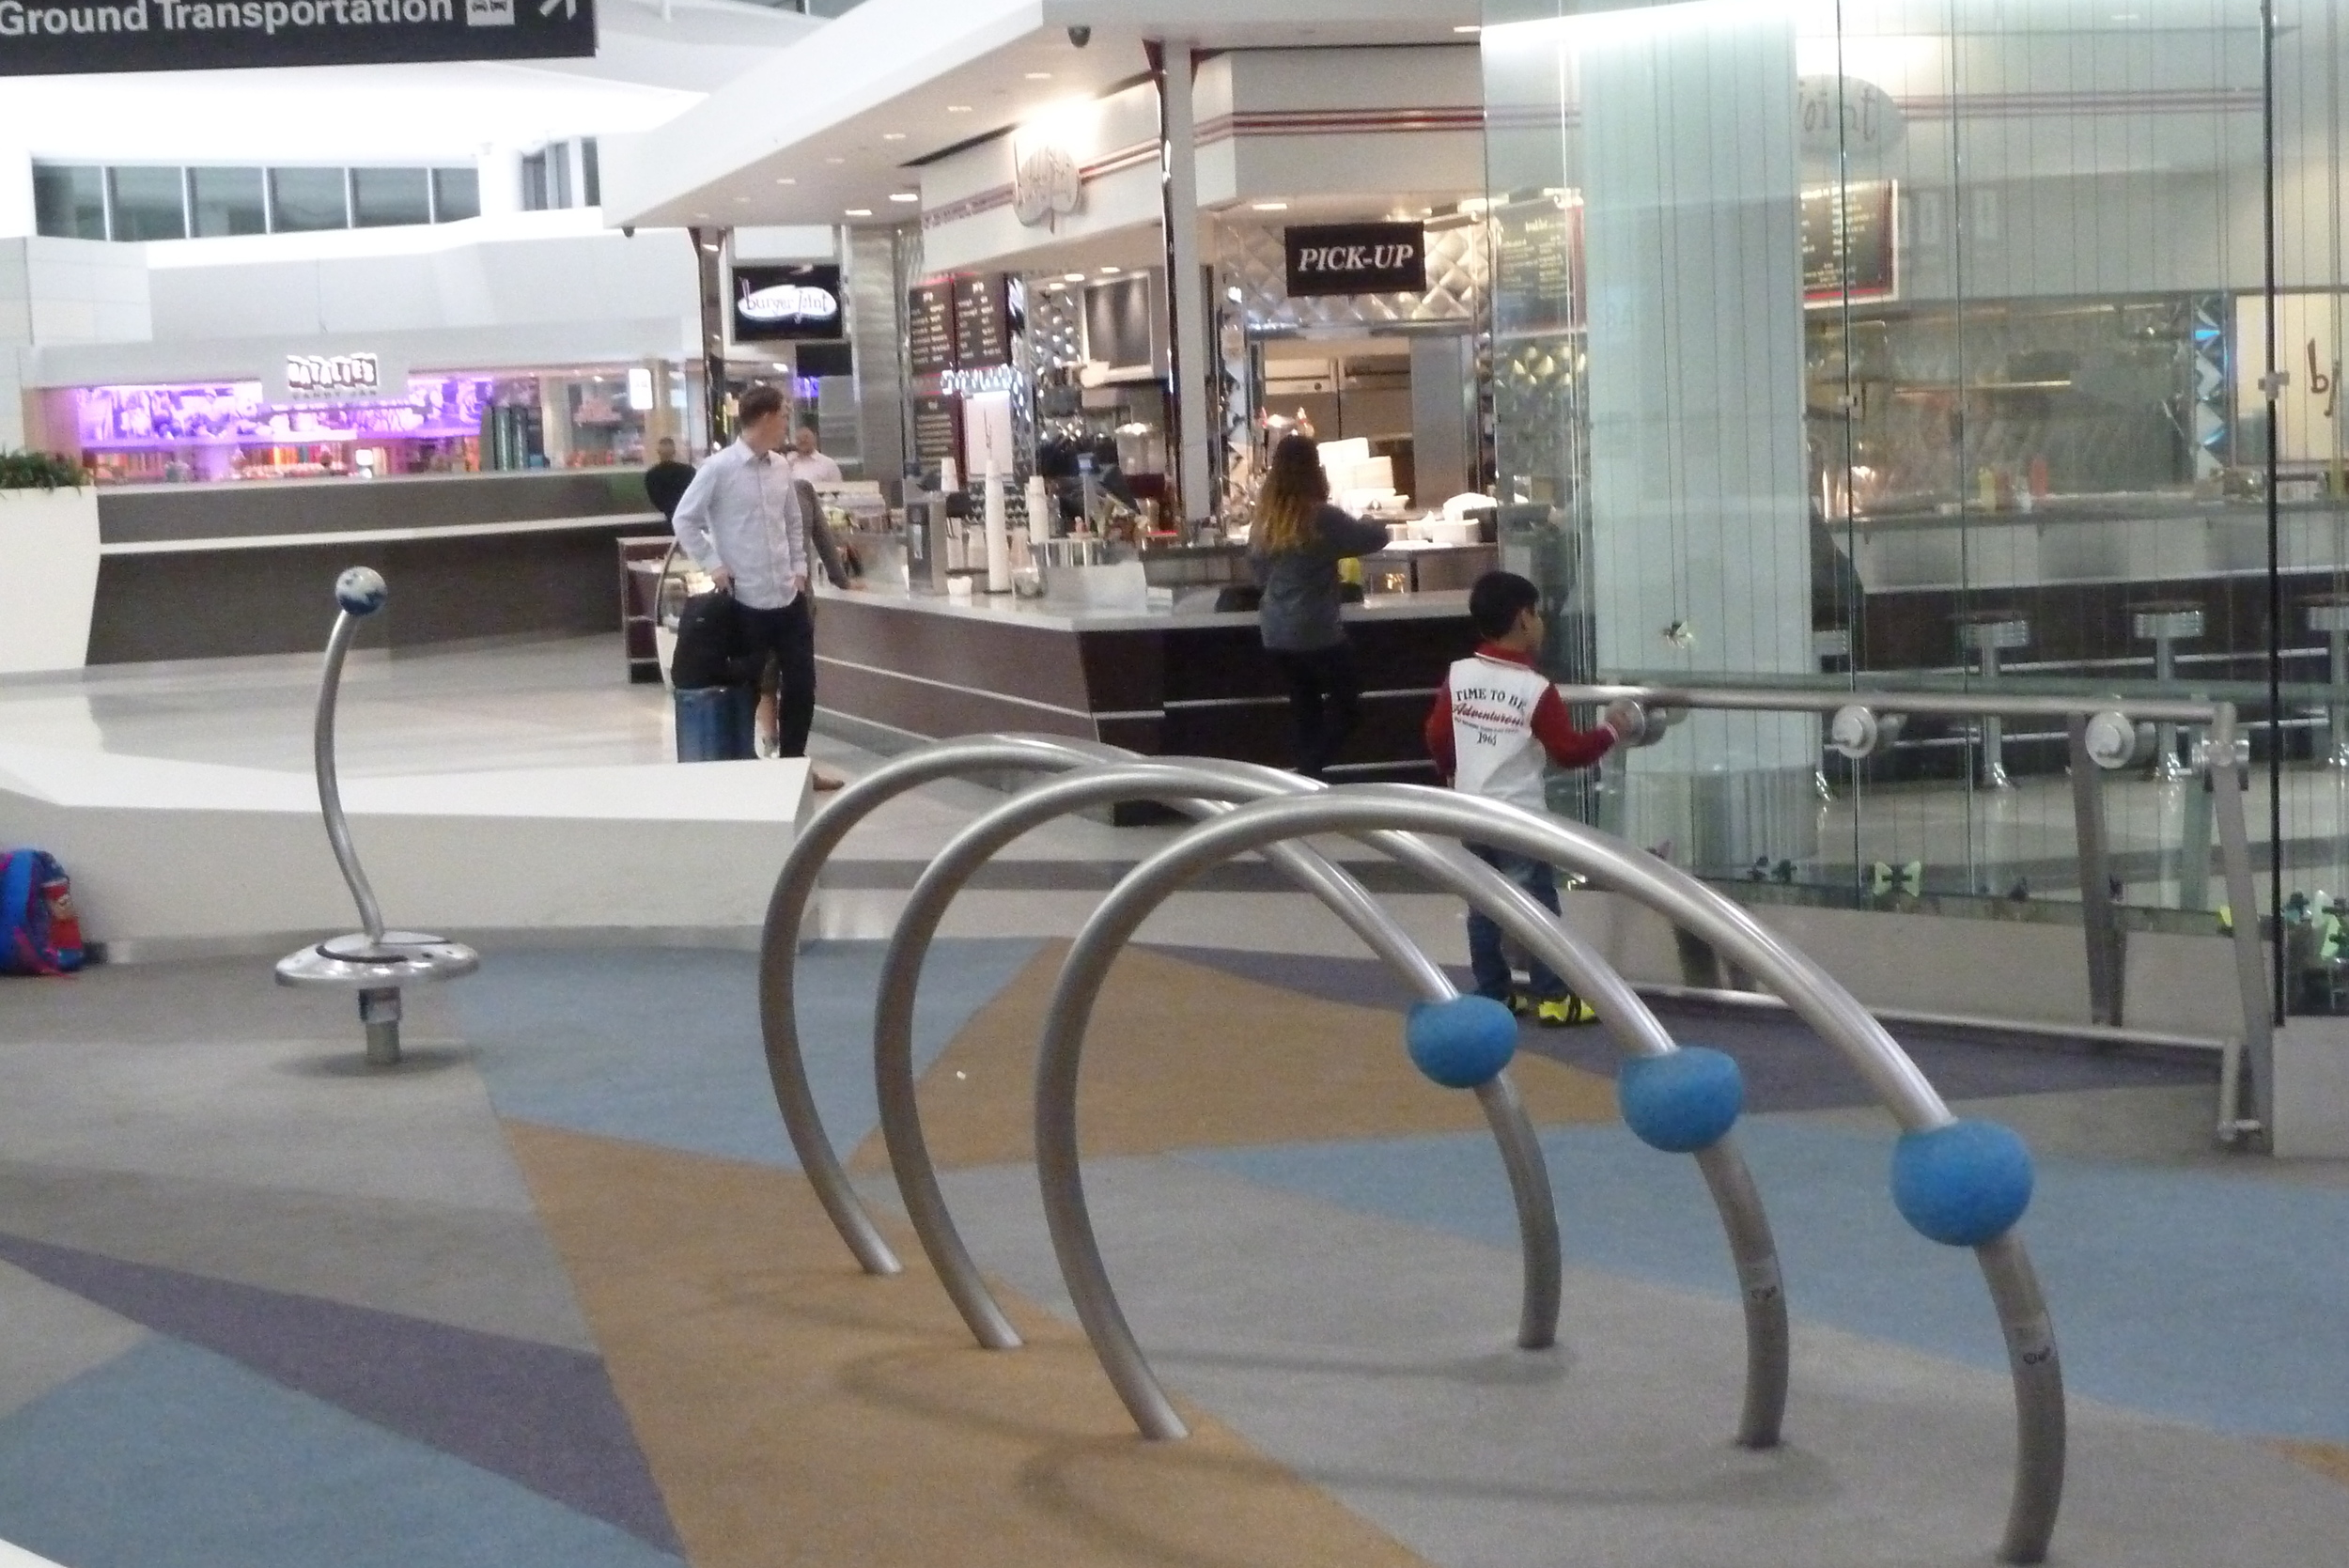 Play areas at SFO help kids work off energy before boarding.